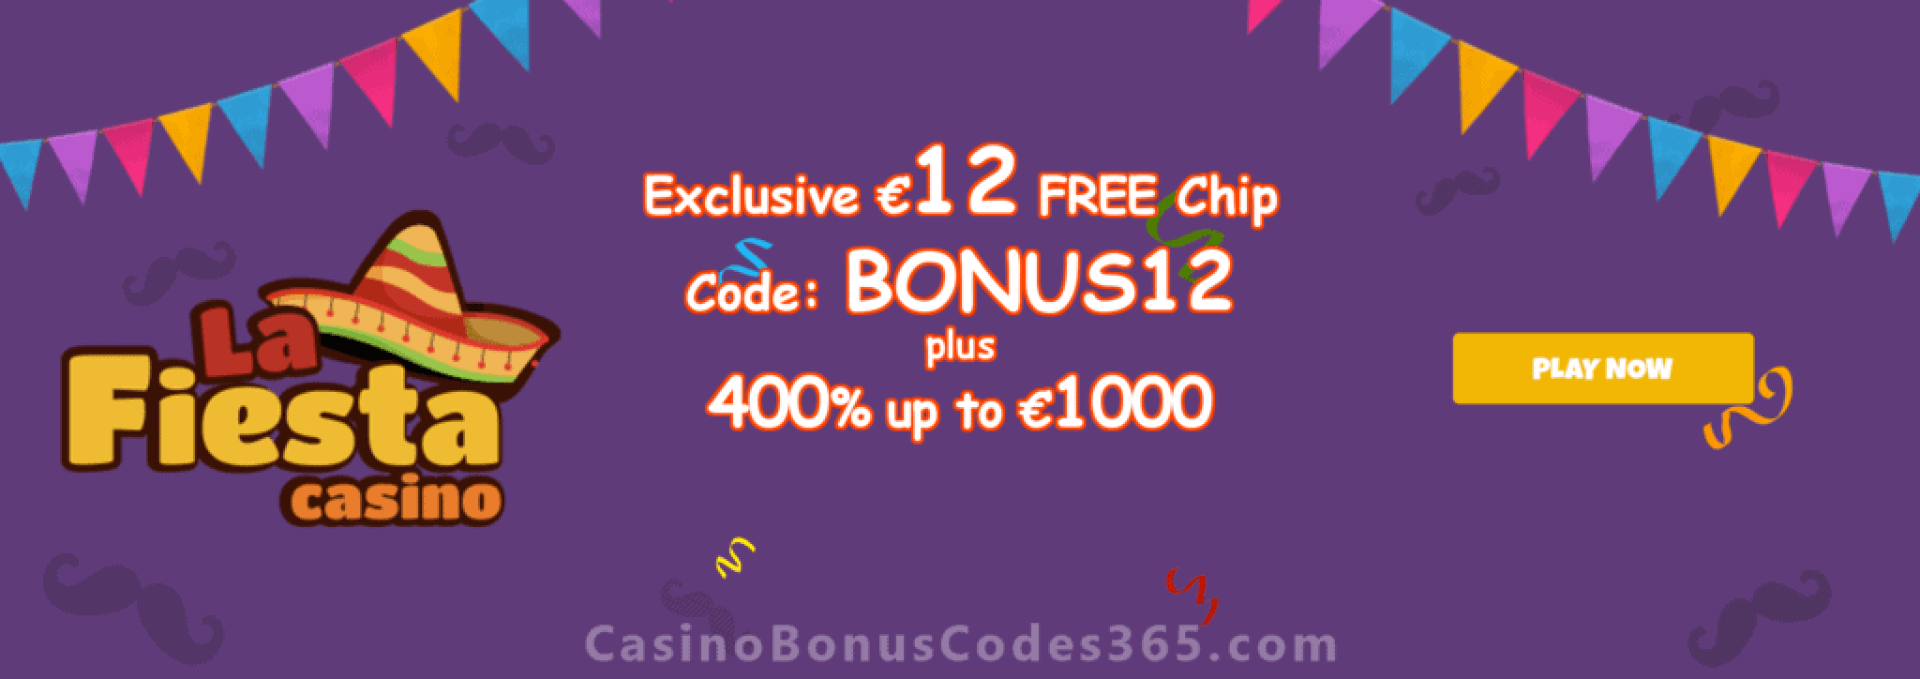 La Fiesta Casino Exclusive €12 FREE Chip Welcome Package